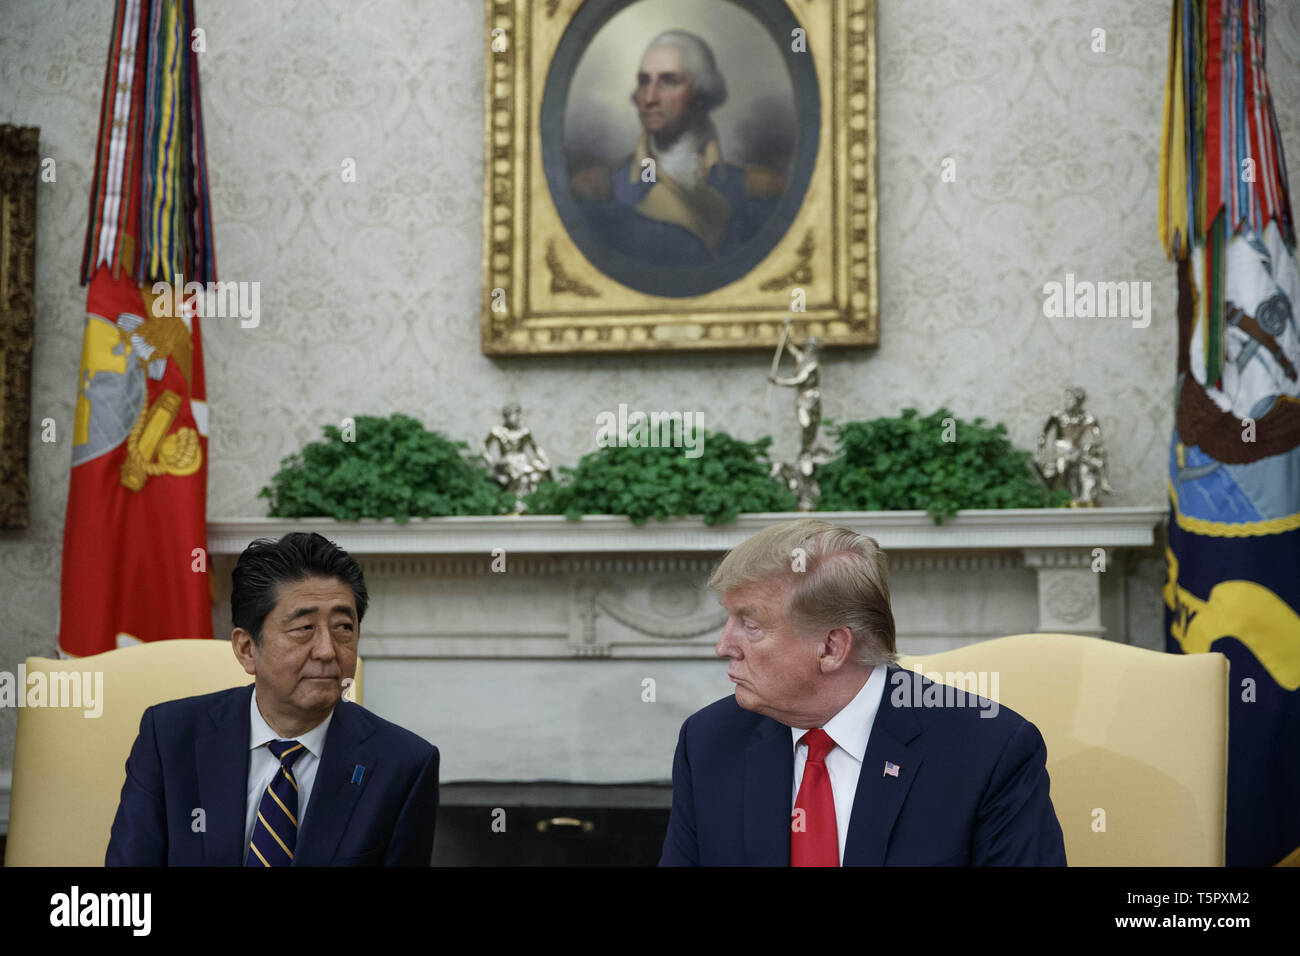 Washington, District of Columbia, USA. 26th Apr, 2019. US President Donald J. Trump meets with Japanese Prime Minister Shinzo Abe in the Oval Office of the White House in Washington, DC, USA, 26 April 2019. President Trump is hosting a dinner for Prime Minister Abe and his wife celebrating the First Lady's 49th birthday.Credit: Shawn Thew/Pool via CNP Credit: Shawn Thew/CNP/ZUMA Wire/Alamy Live News Stock Photo